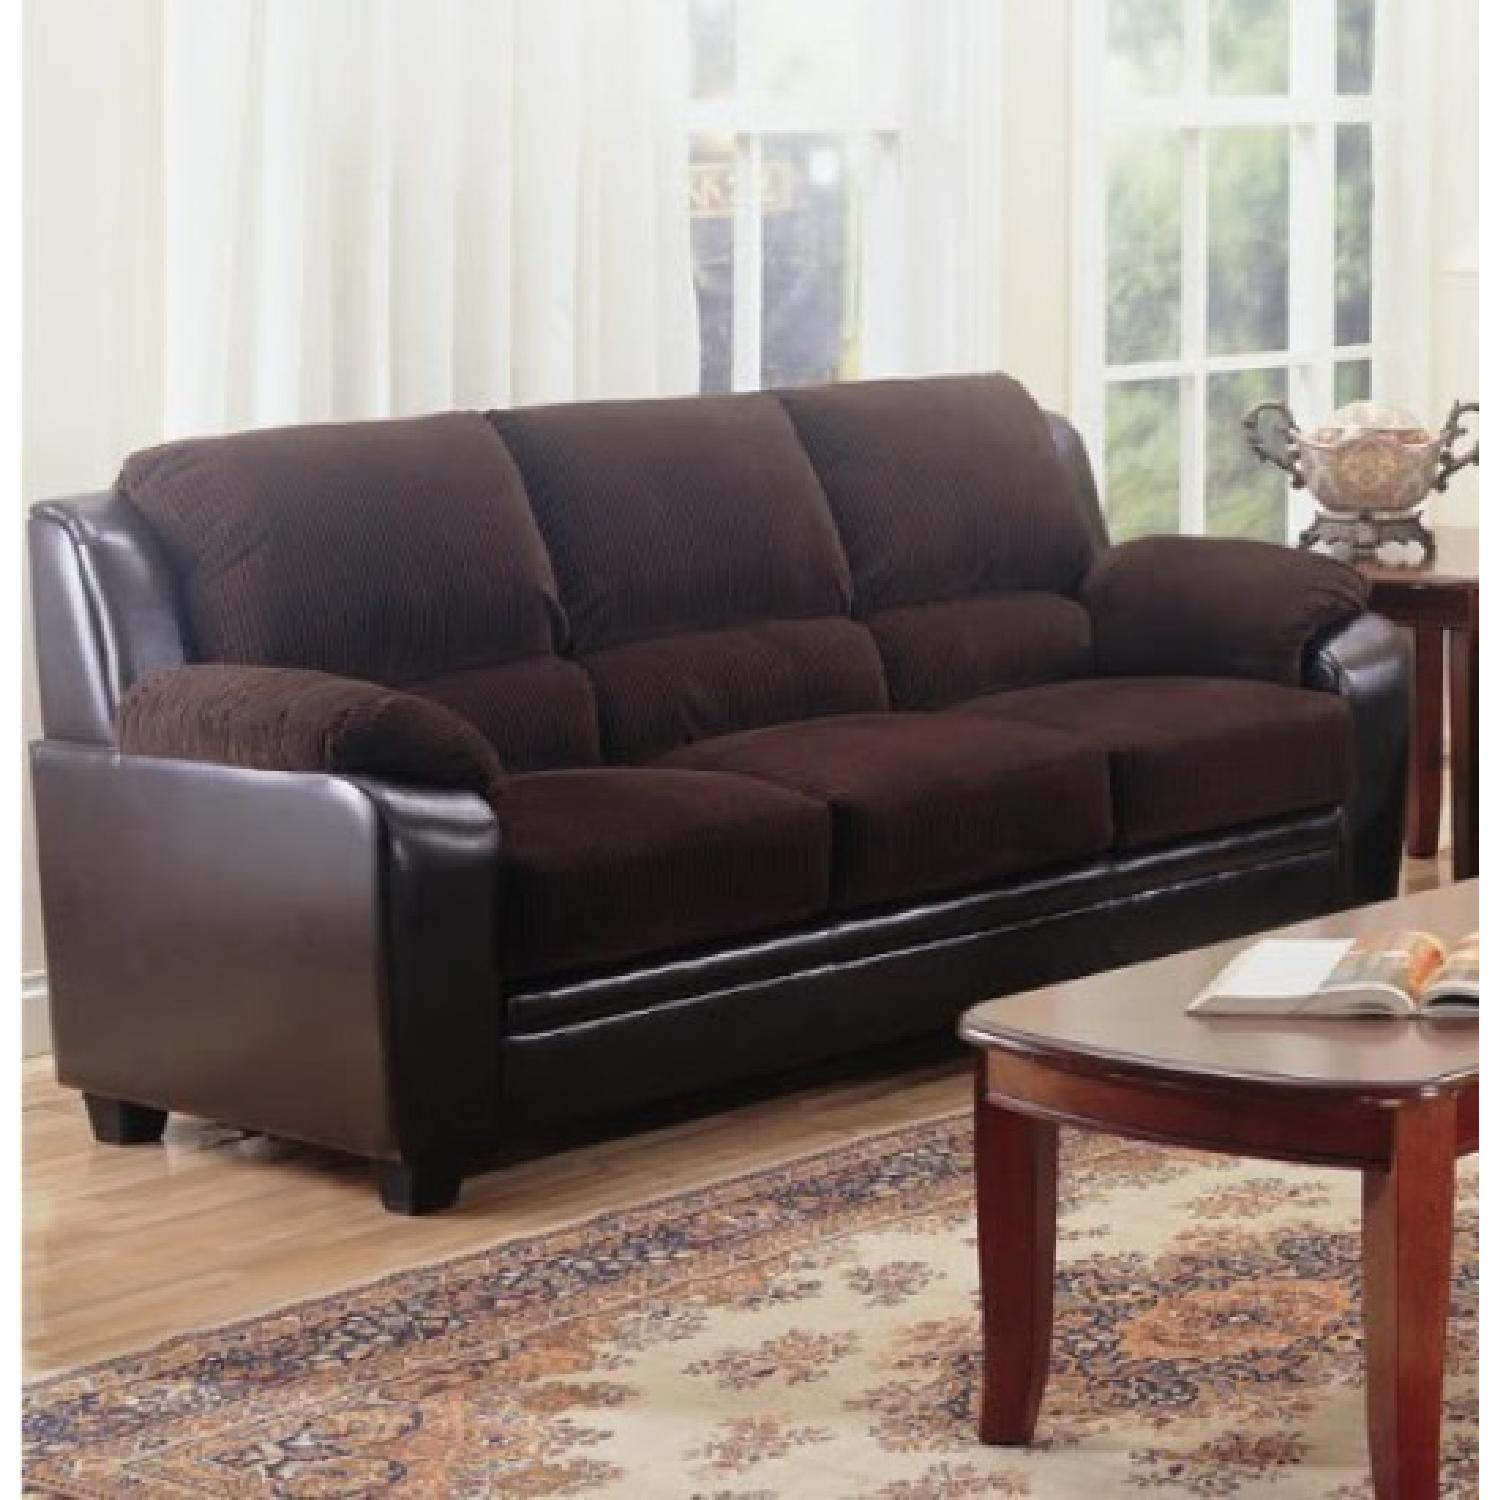 Sofa in Brown Corduroy Fabric w/ Dark Brown PU Base